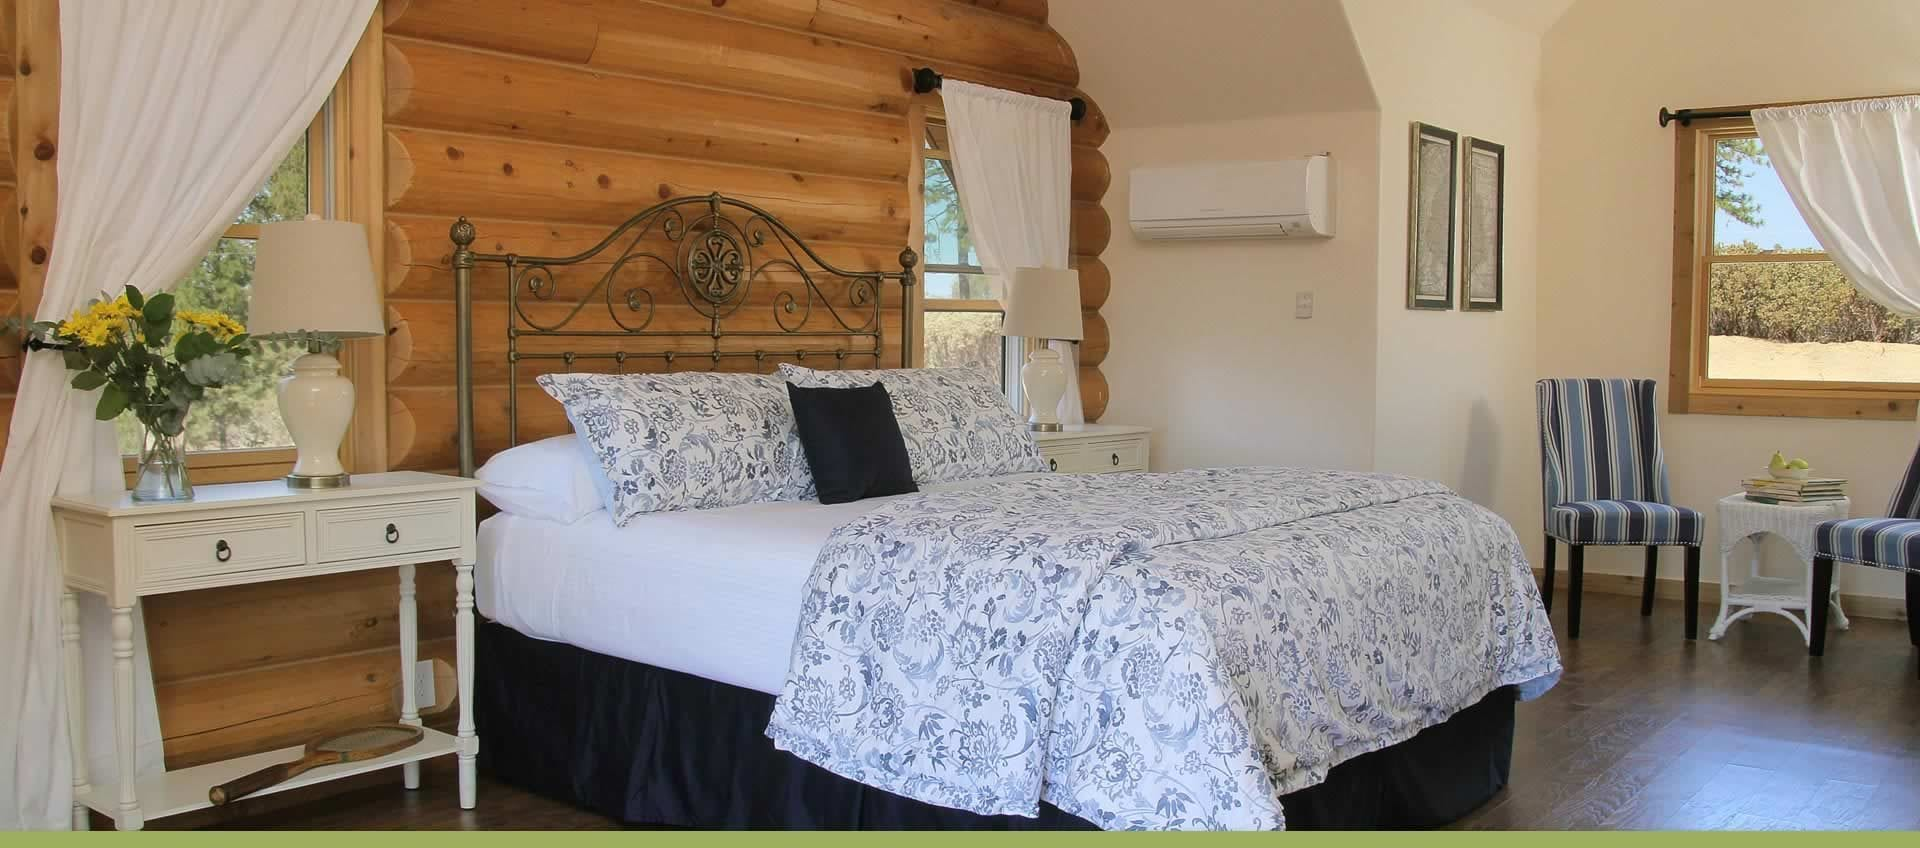 French Open Mini Suite | Courtwood Inn – Courtwood Inn B and B